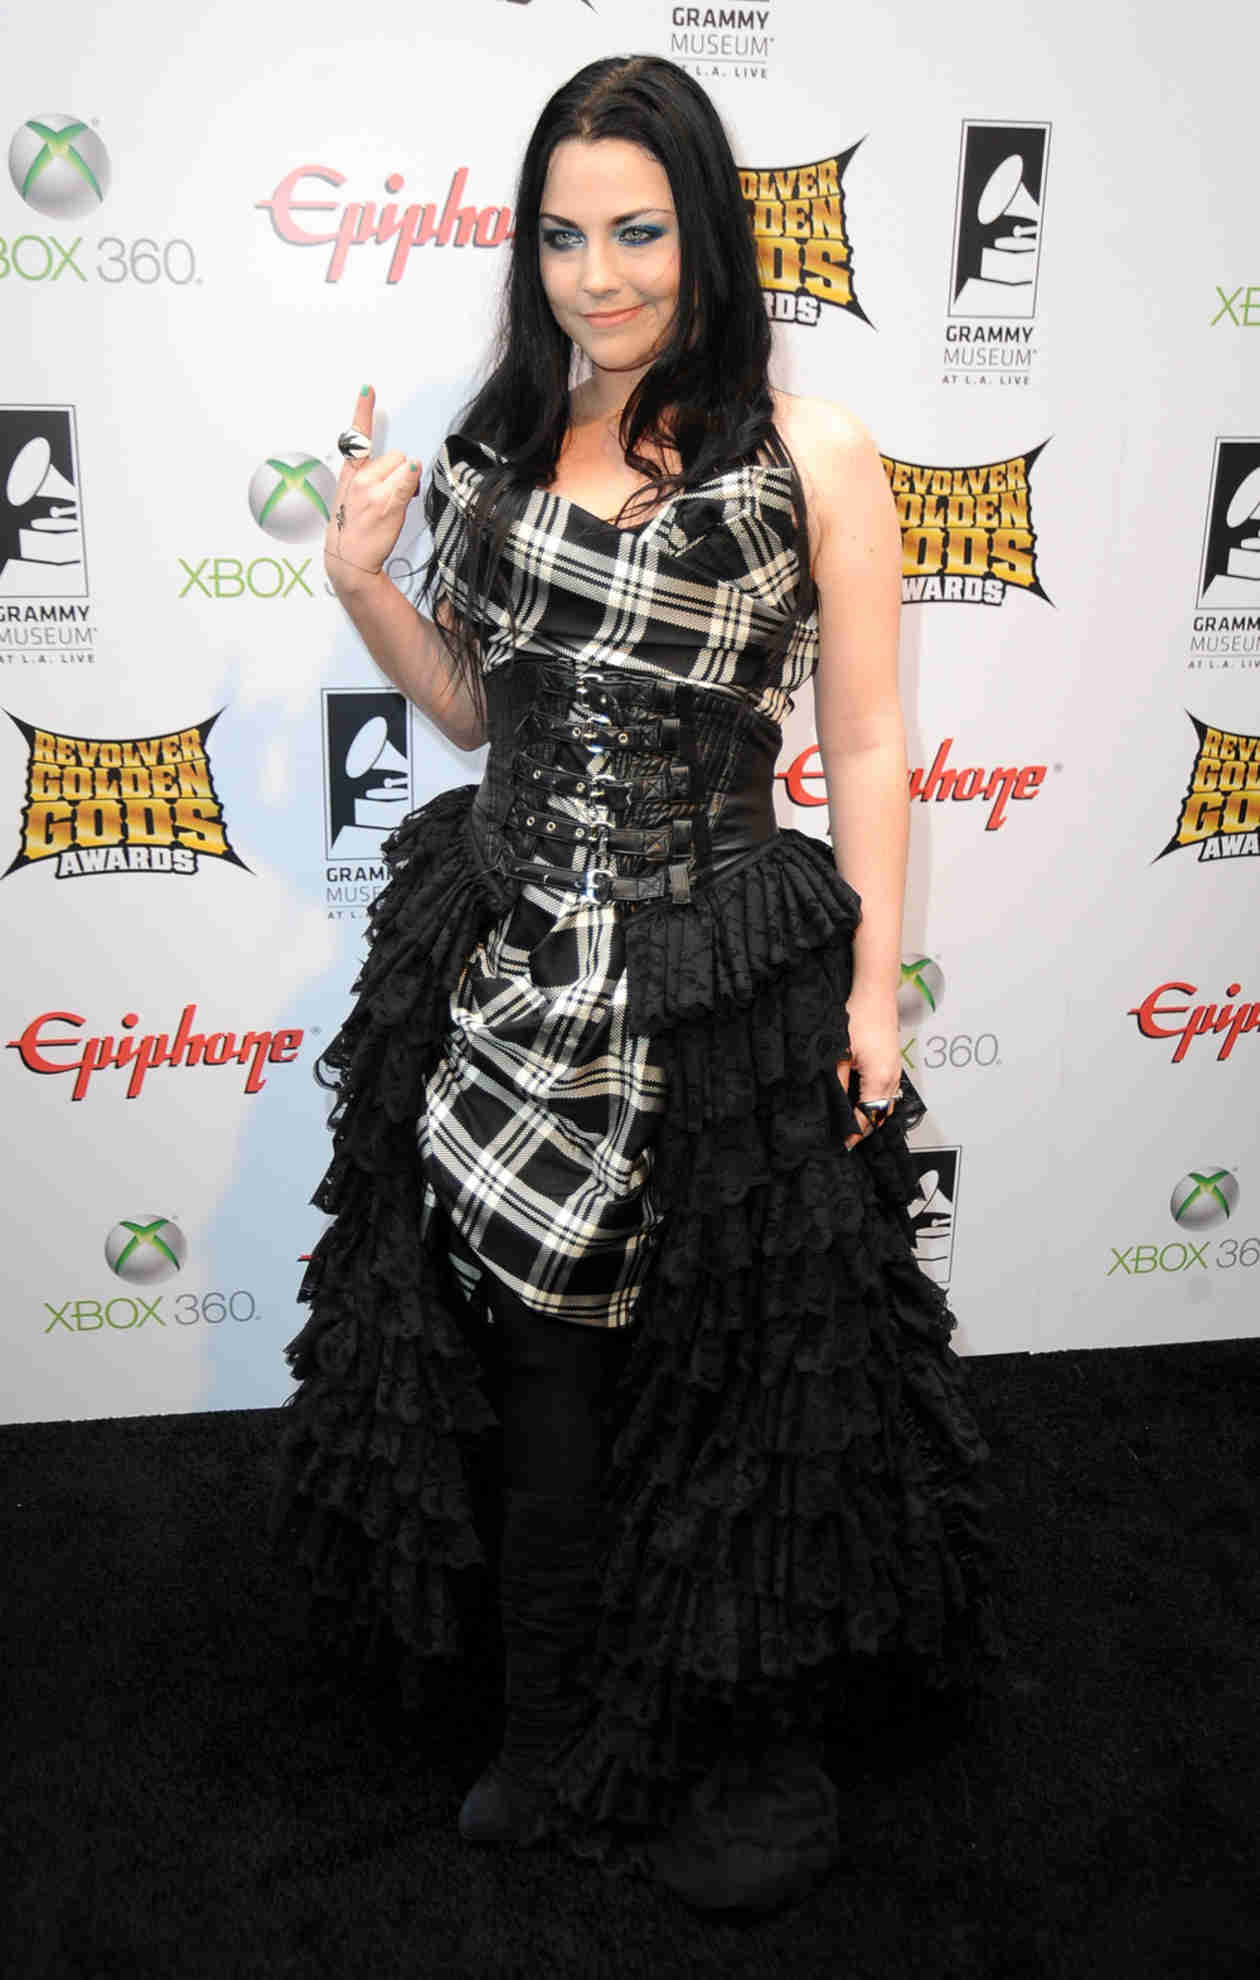 Evanescence's Amy Lee Welcomes a Baby Boy — See the First Pic! (PHOTO)